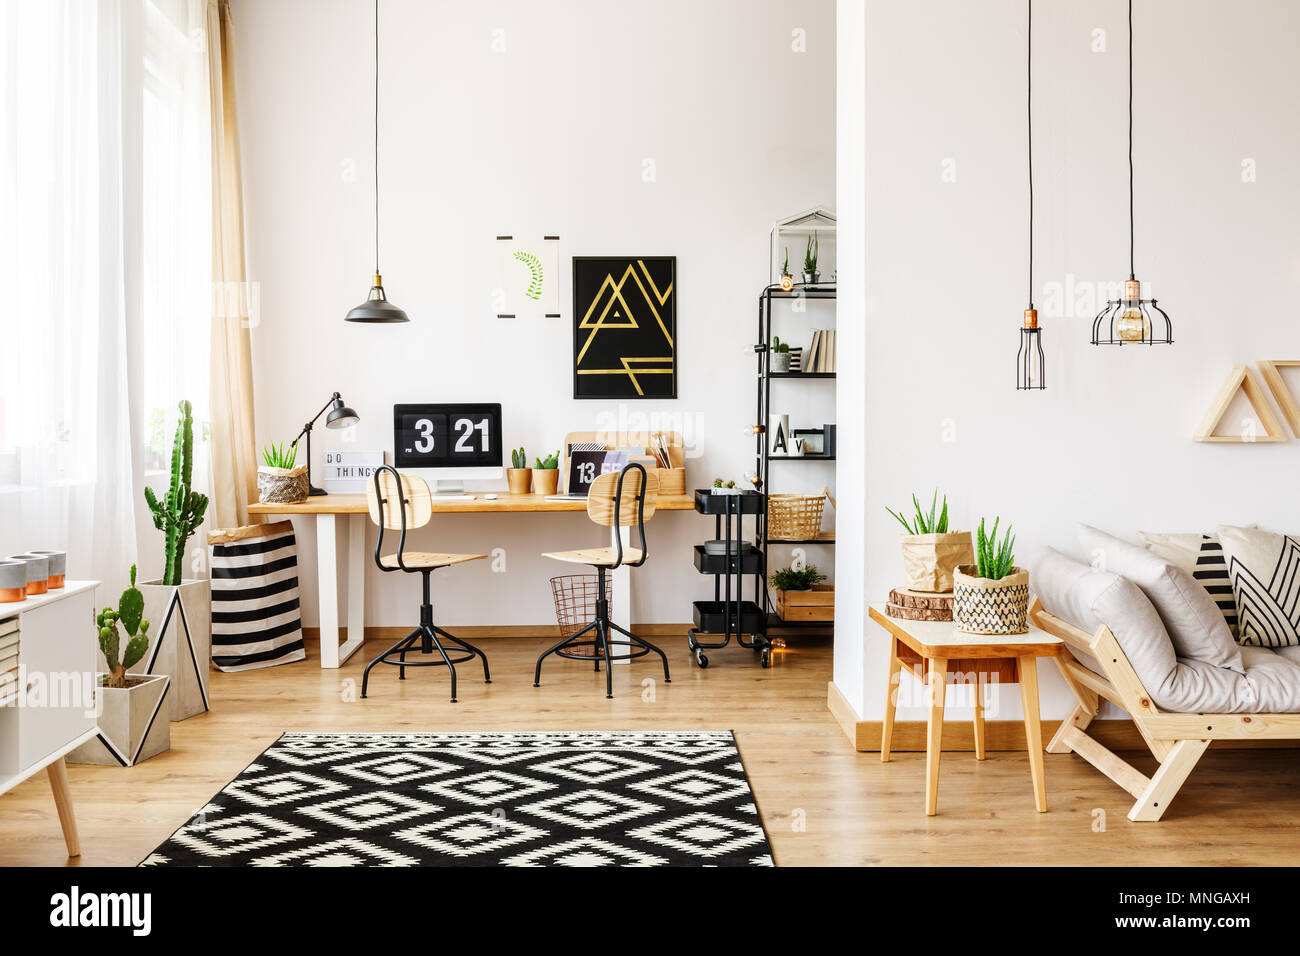 scandinavian living room furniture open plan kitchen design ideas stock photos contemporary in style with office interior desk poster retro chairs and